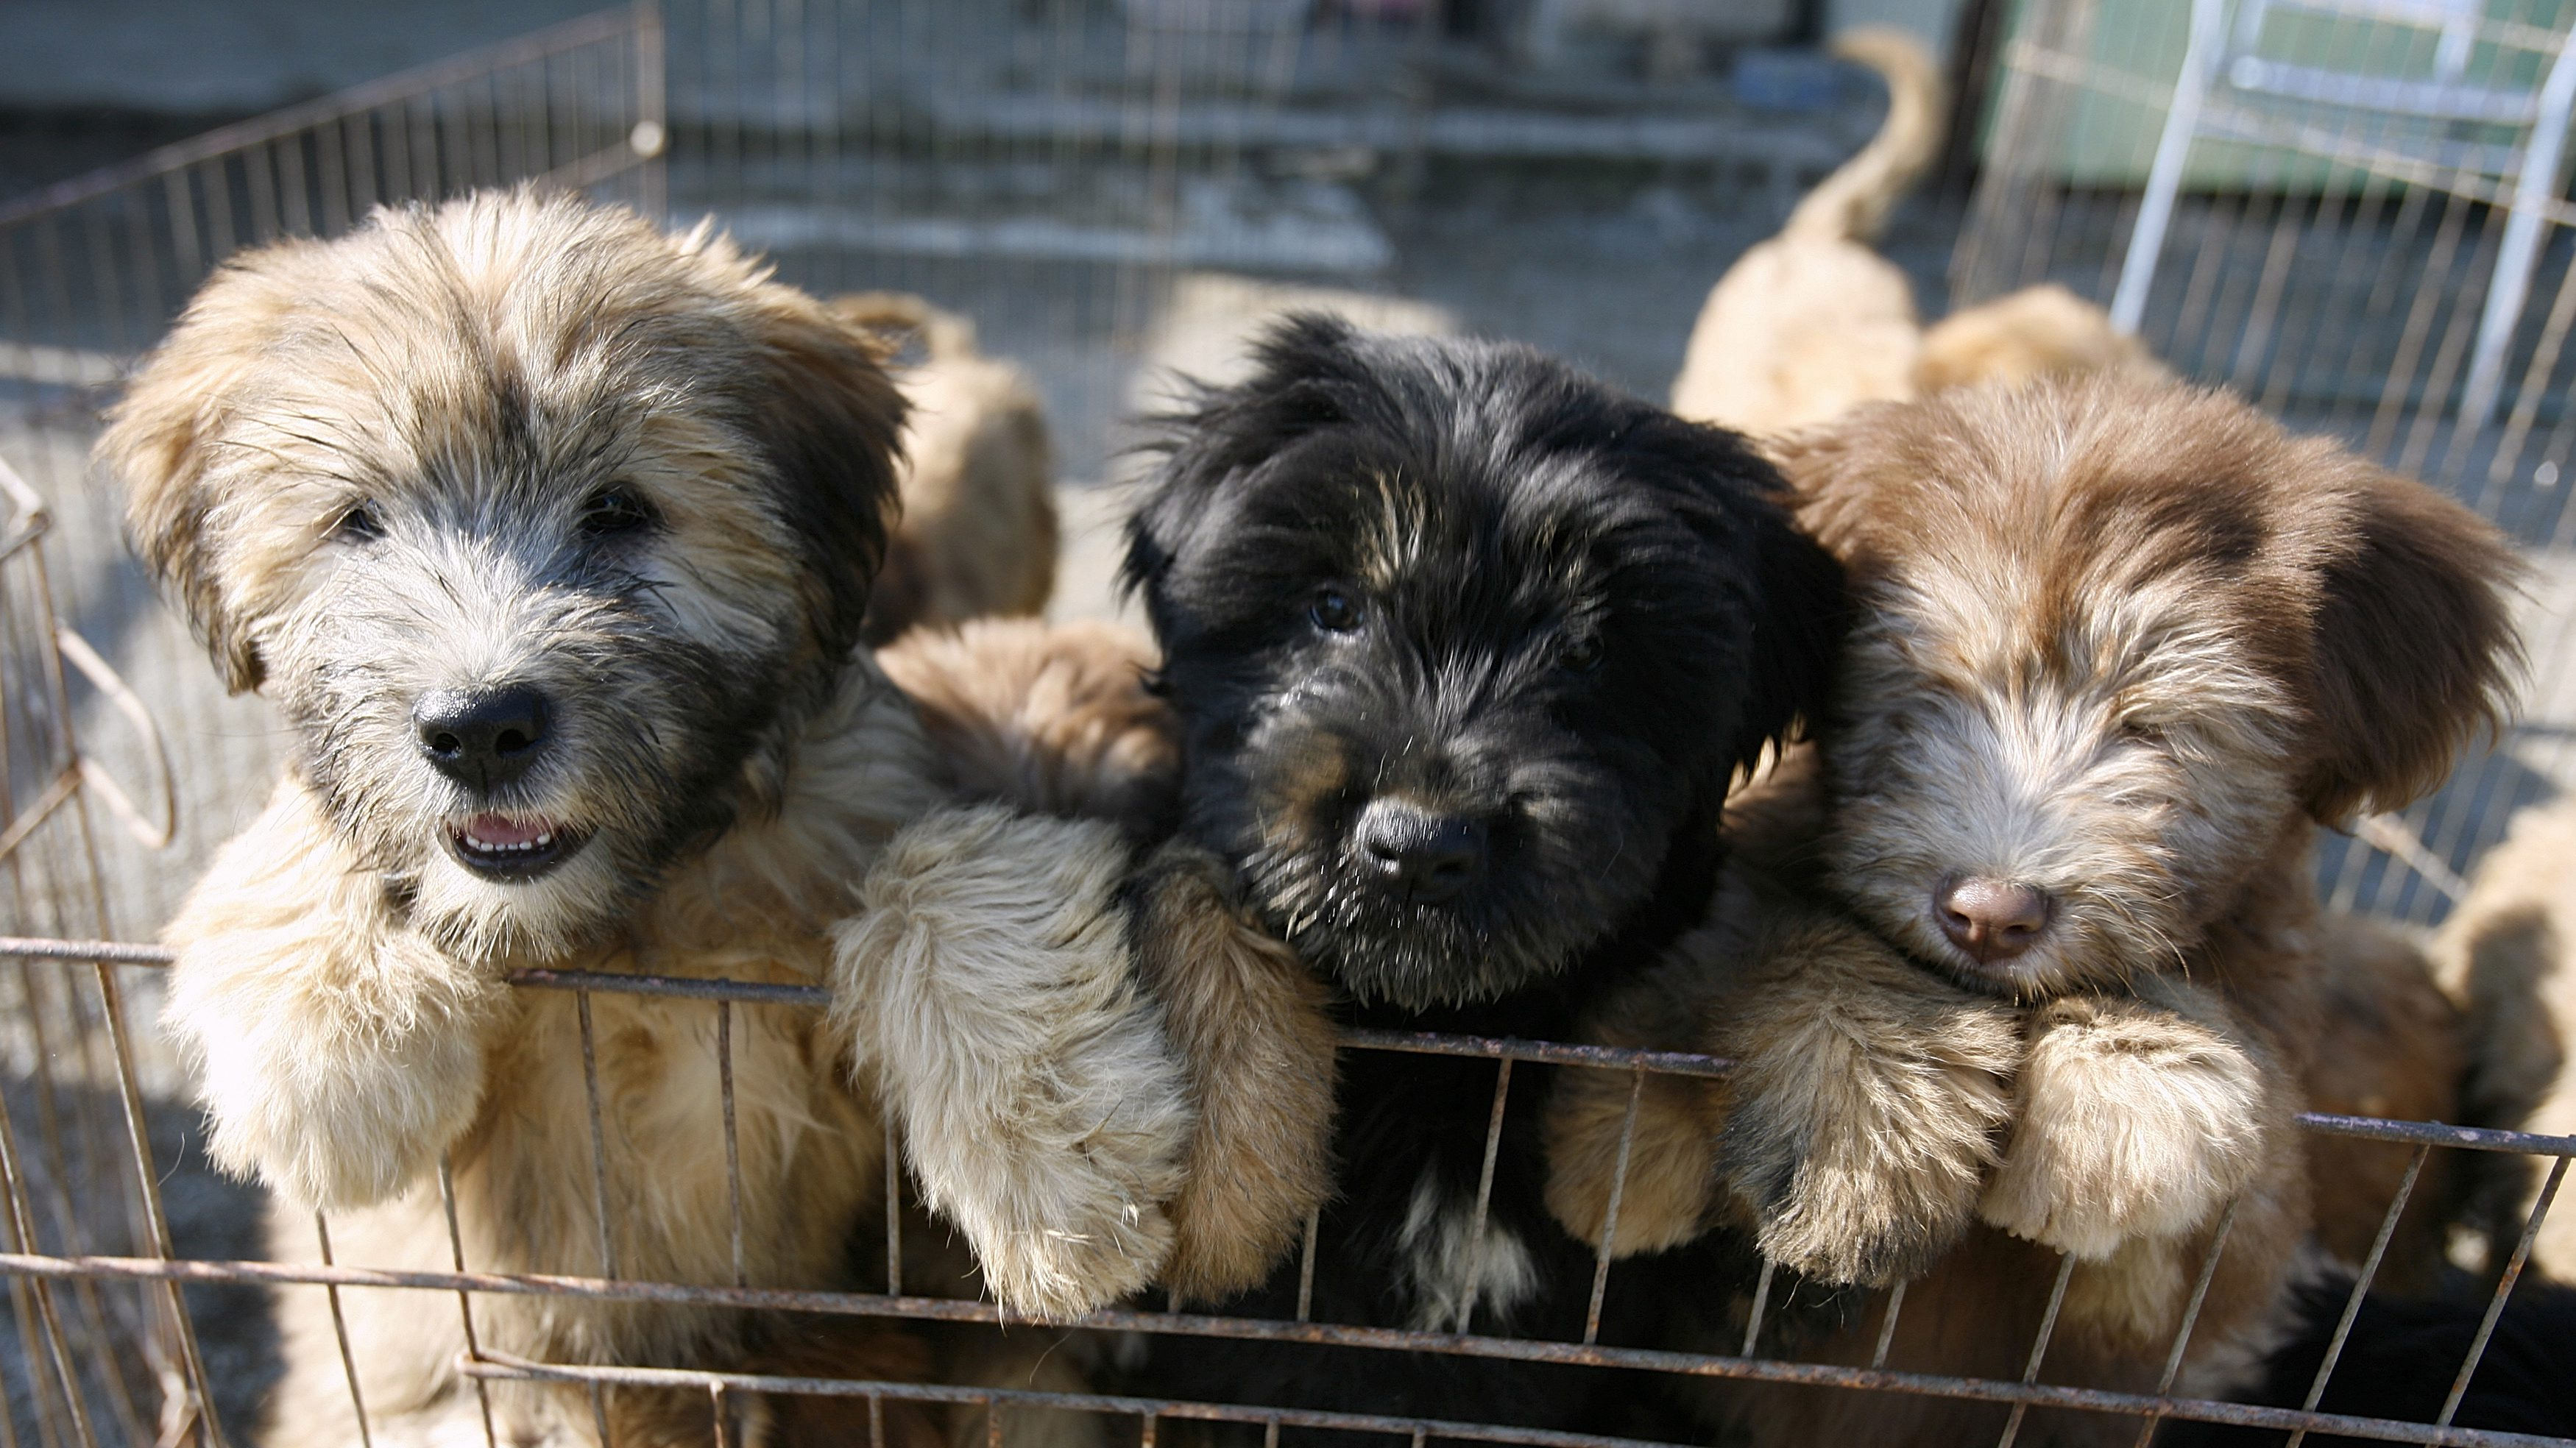 Sapsaree puppies stand in their cage in Gyeongsan, South Korea October 29, 2010. Sapsarees, shaggy-haired dogs long valued for their loyalty, were killed in large numbers by the Japanese military during the period of Japanese colonial rule, but have since made a comeback thanks to Ha Ji-Hong, a U.S.-educated geneticist who combined traditional breeding with advances in modern DNA technology. Picture taken October 29, 2010. To match Reuters Life! KOREA DOG/SAVED REUTERS/Hyungwon Kang (SOUTH KOREA - Tags: SOCIETY ANIMALS IMAGES OF THE DAY) - RTXUQ6B